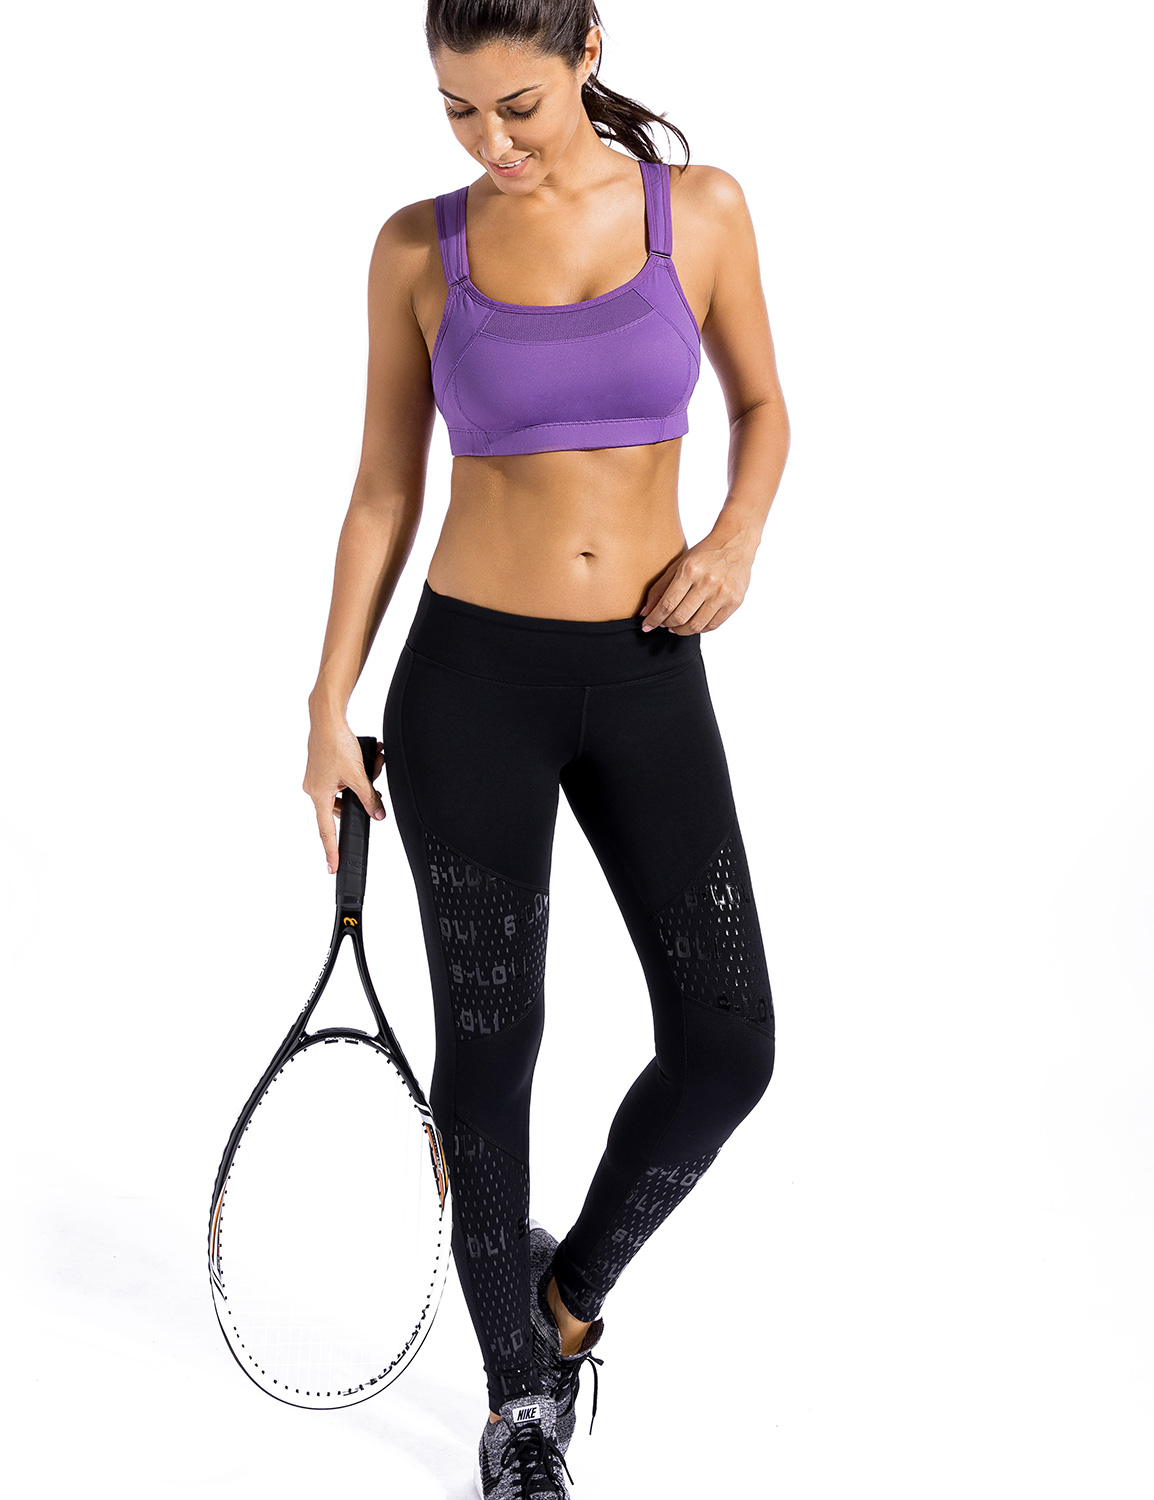 Women-039-s-Bounce-Control-Wire-Free-High-Impact-Max-Support-Sports-Bra thumbnail 18